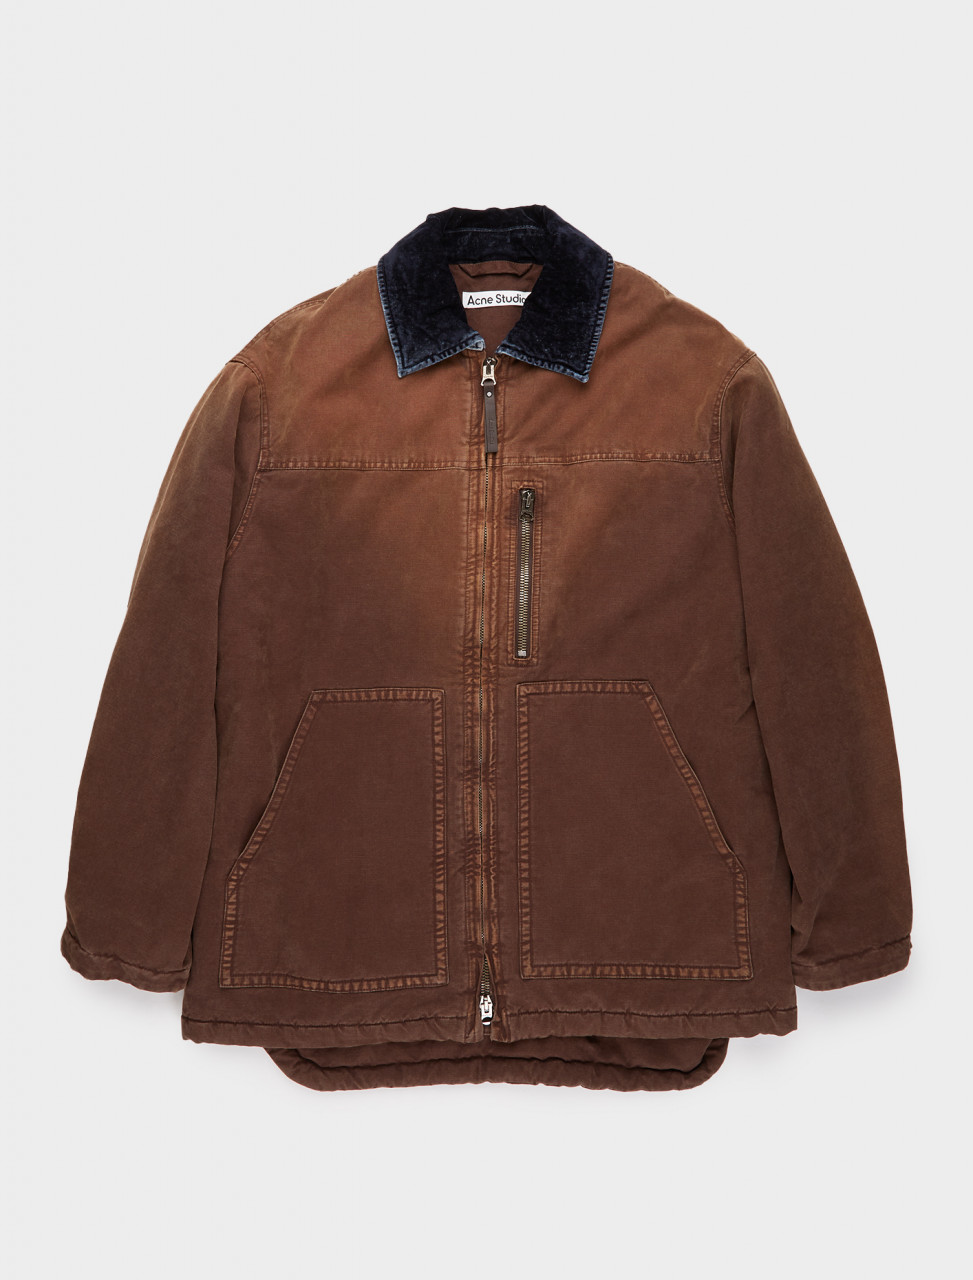 110-B90439-CA8 ACNE STUDIOS Stonewashed Canvas Jacket in Cacao Brown